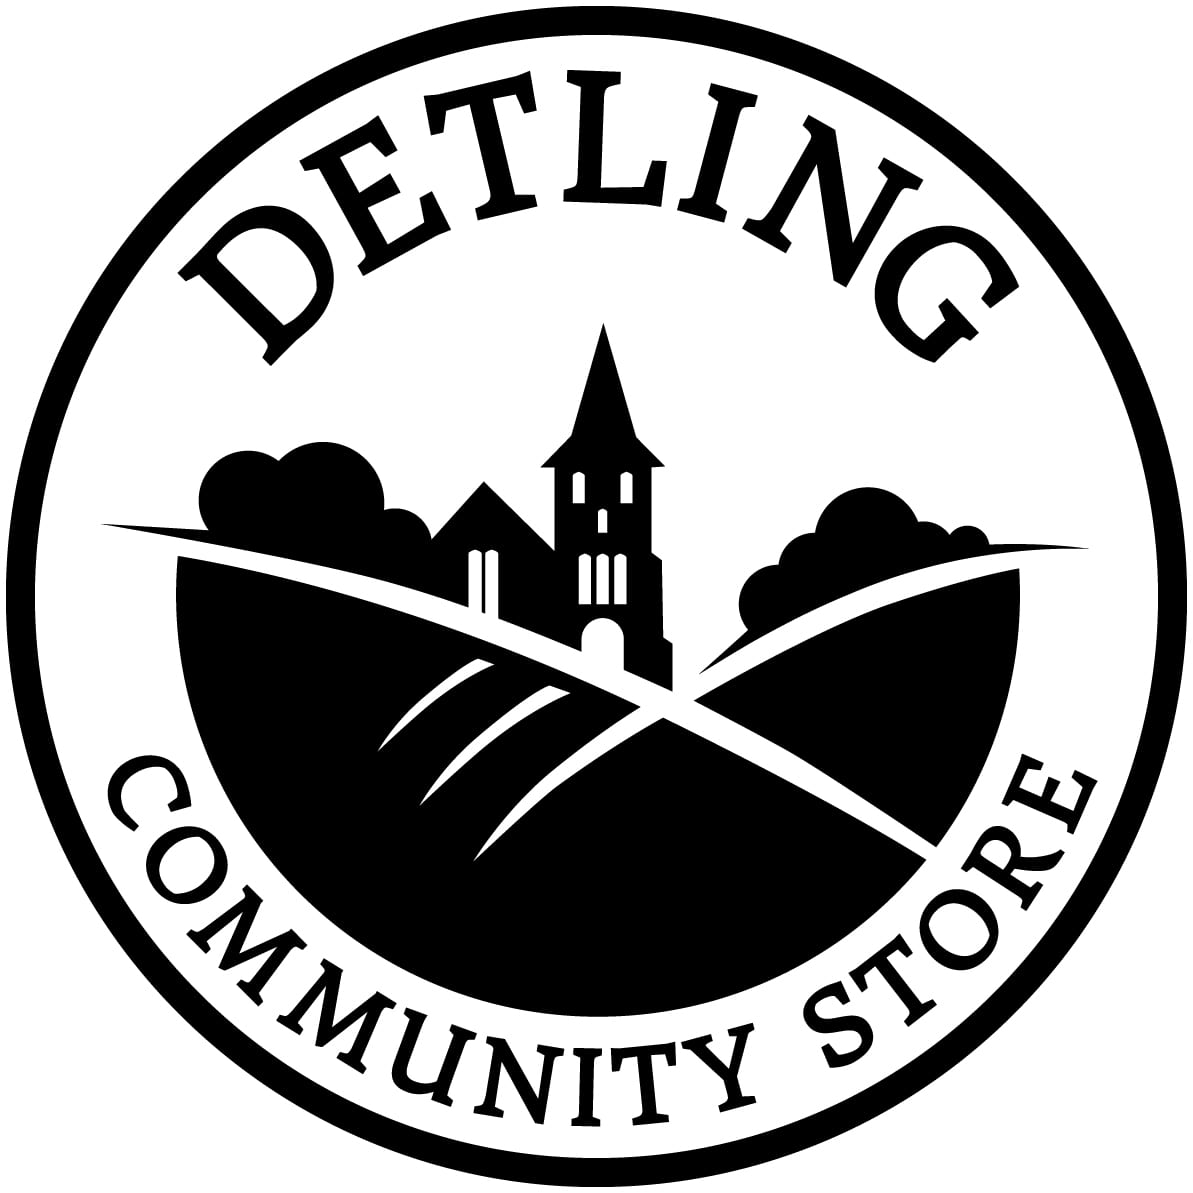 Detling Community Store